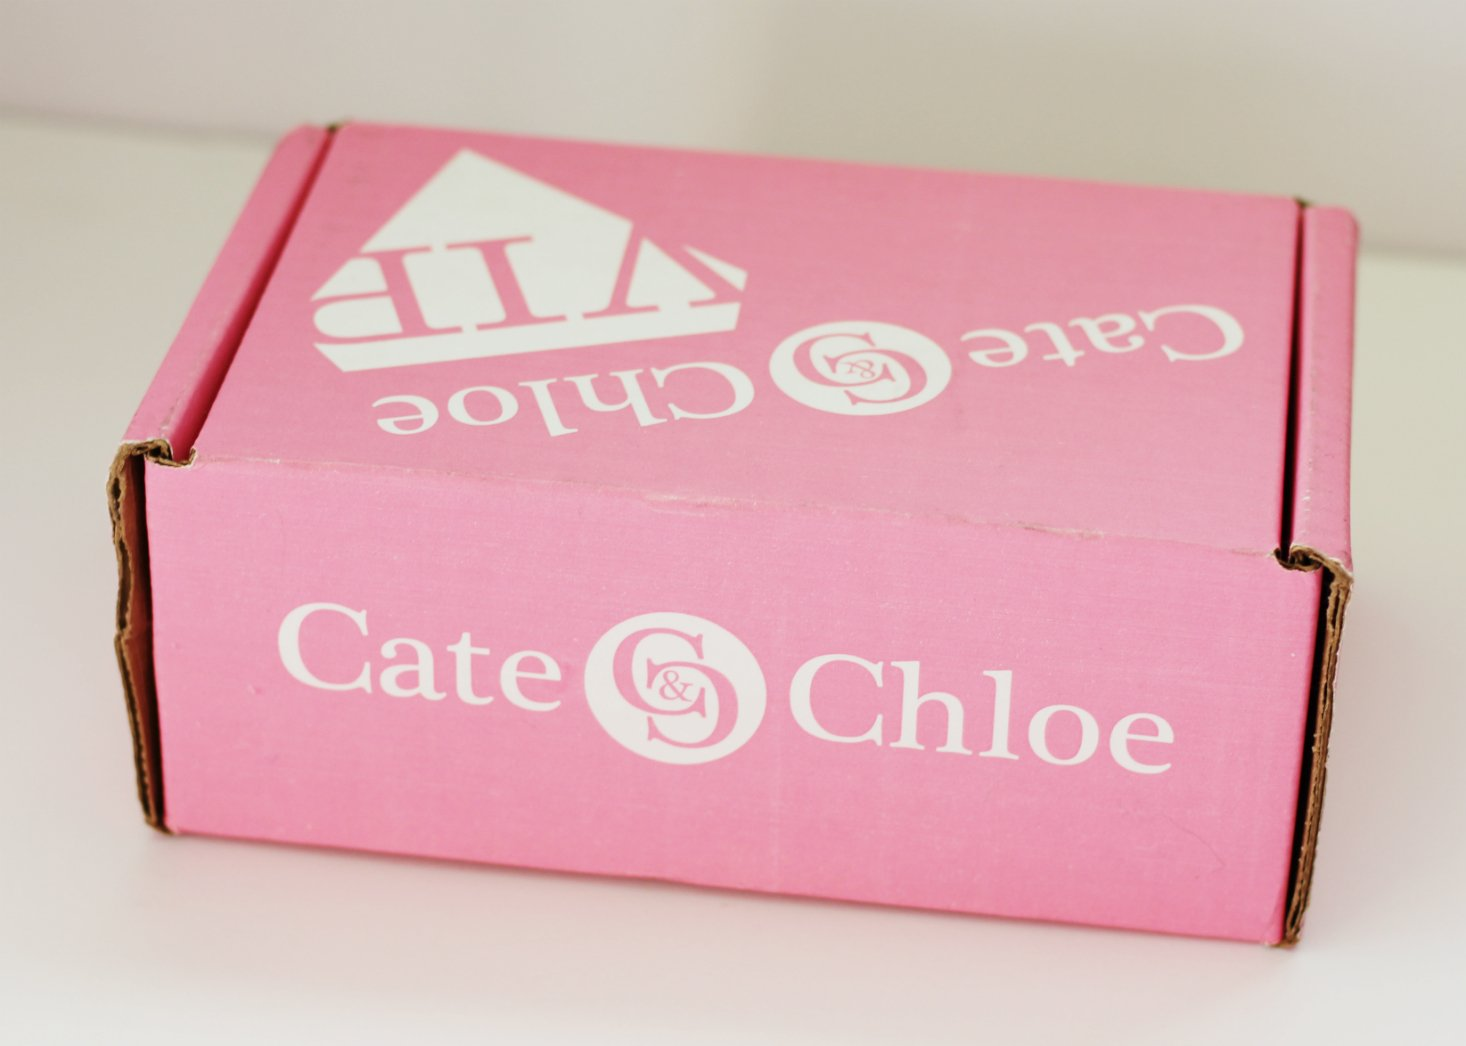 Cate & Chloe Subscription Box Review + Coupon – December 2017